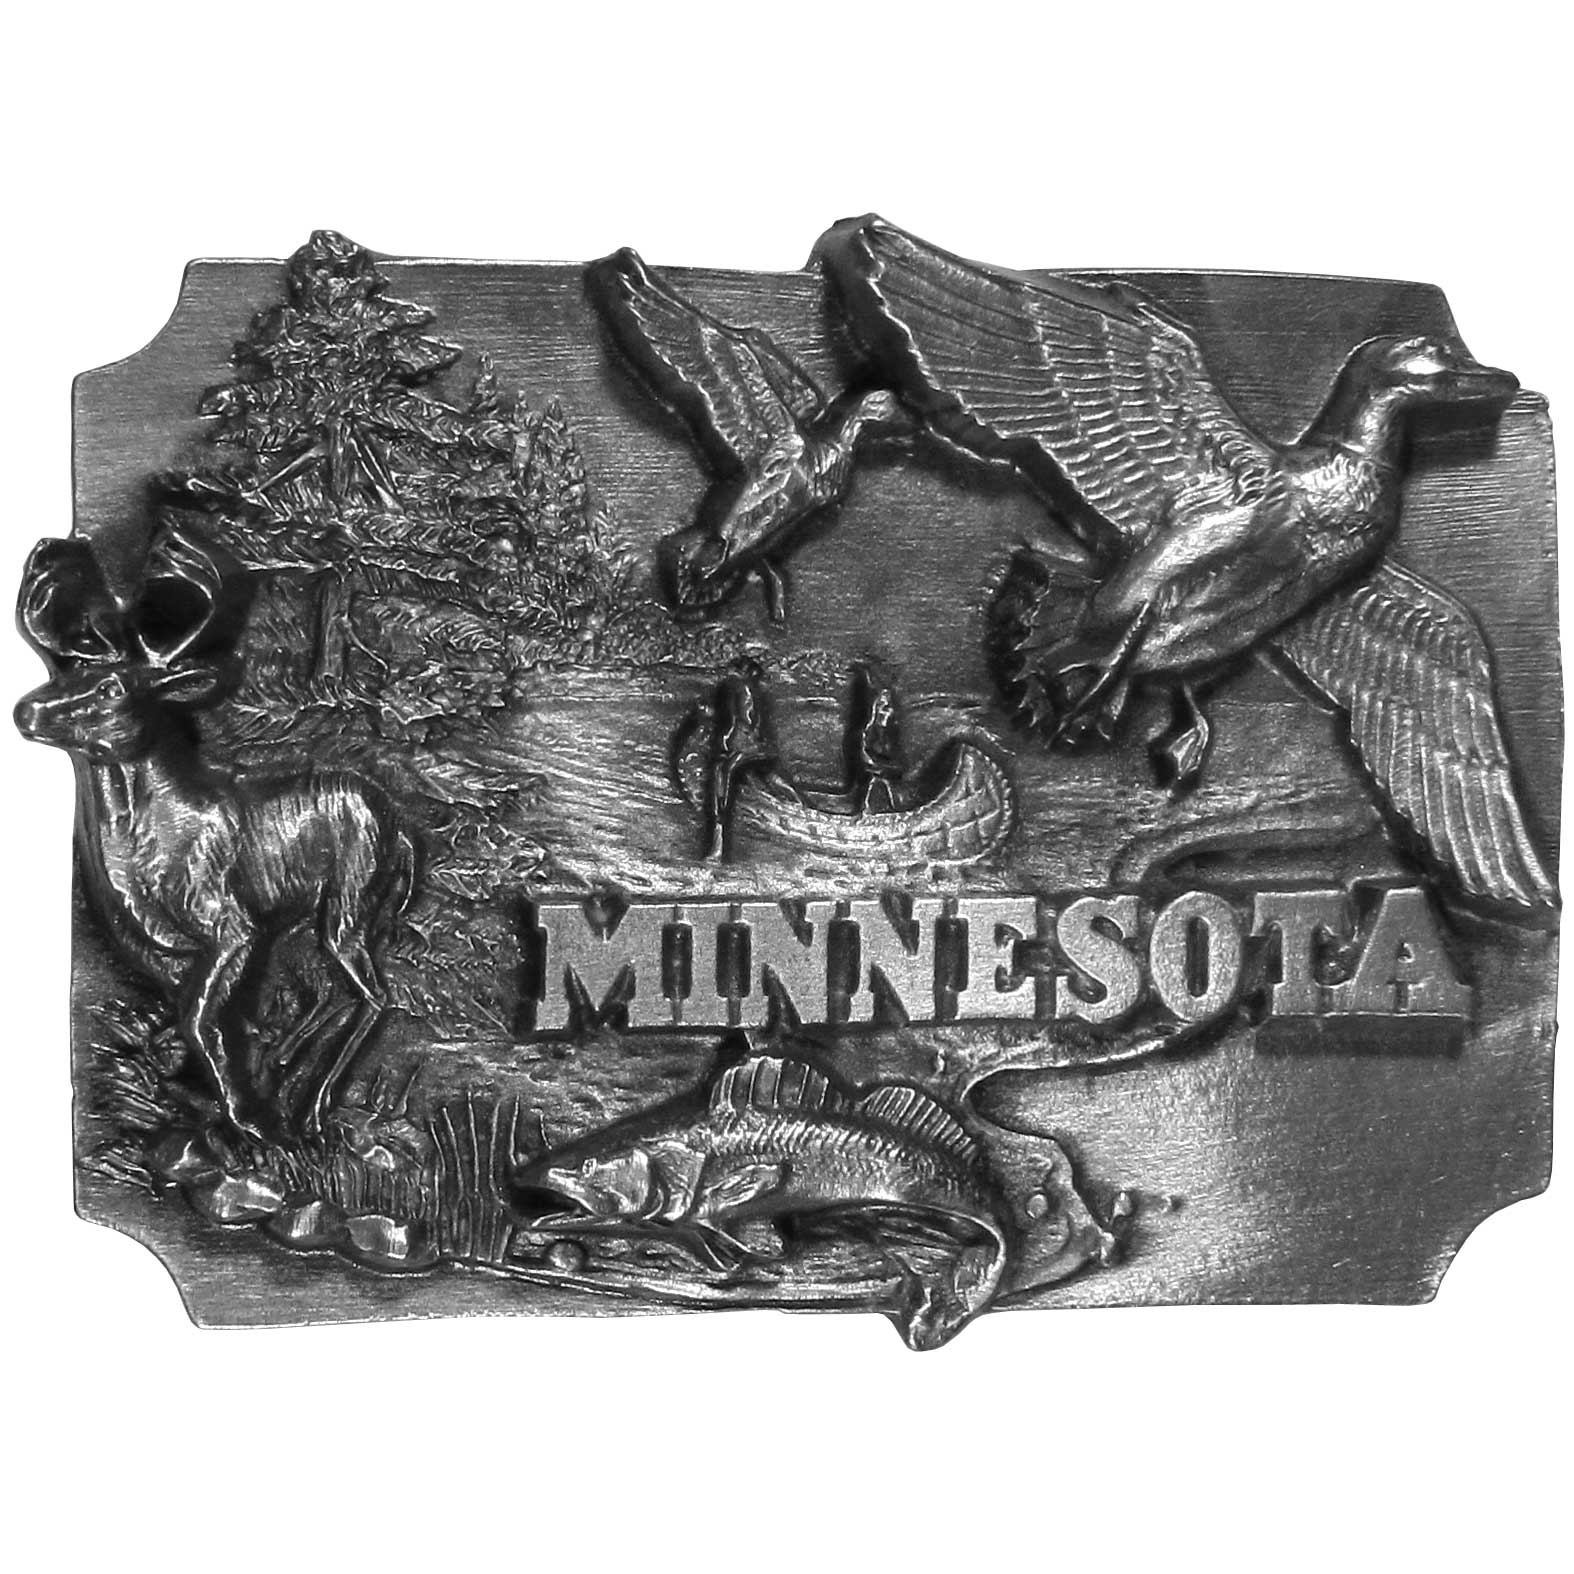 "Minnesota Antiqued Belt Buckle - ""This belt buckle celebrates Minnesota!  There are two ducks flying in the sky, two people in a canoe on a lake, a fish, a deer and trees.  On the back are the words, """"Minnesota became the 32nd state on May 11, 1858.  The state flower is the Lady's Slipper.  The state tree is the Norway Pine and the state bird is the Common Loon."""""""